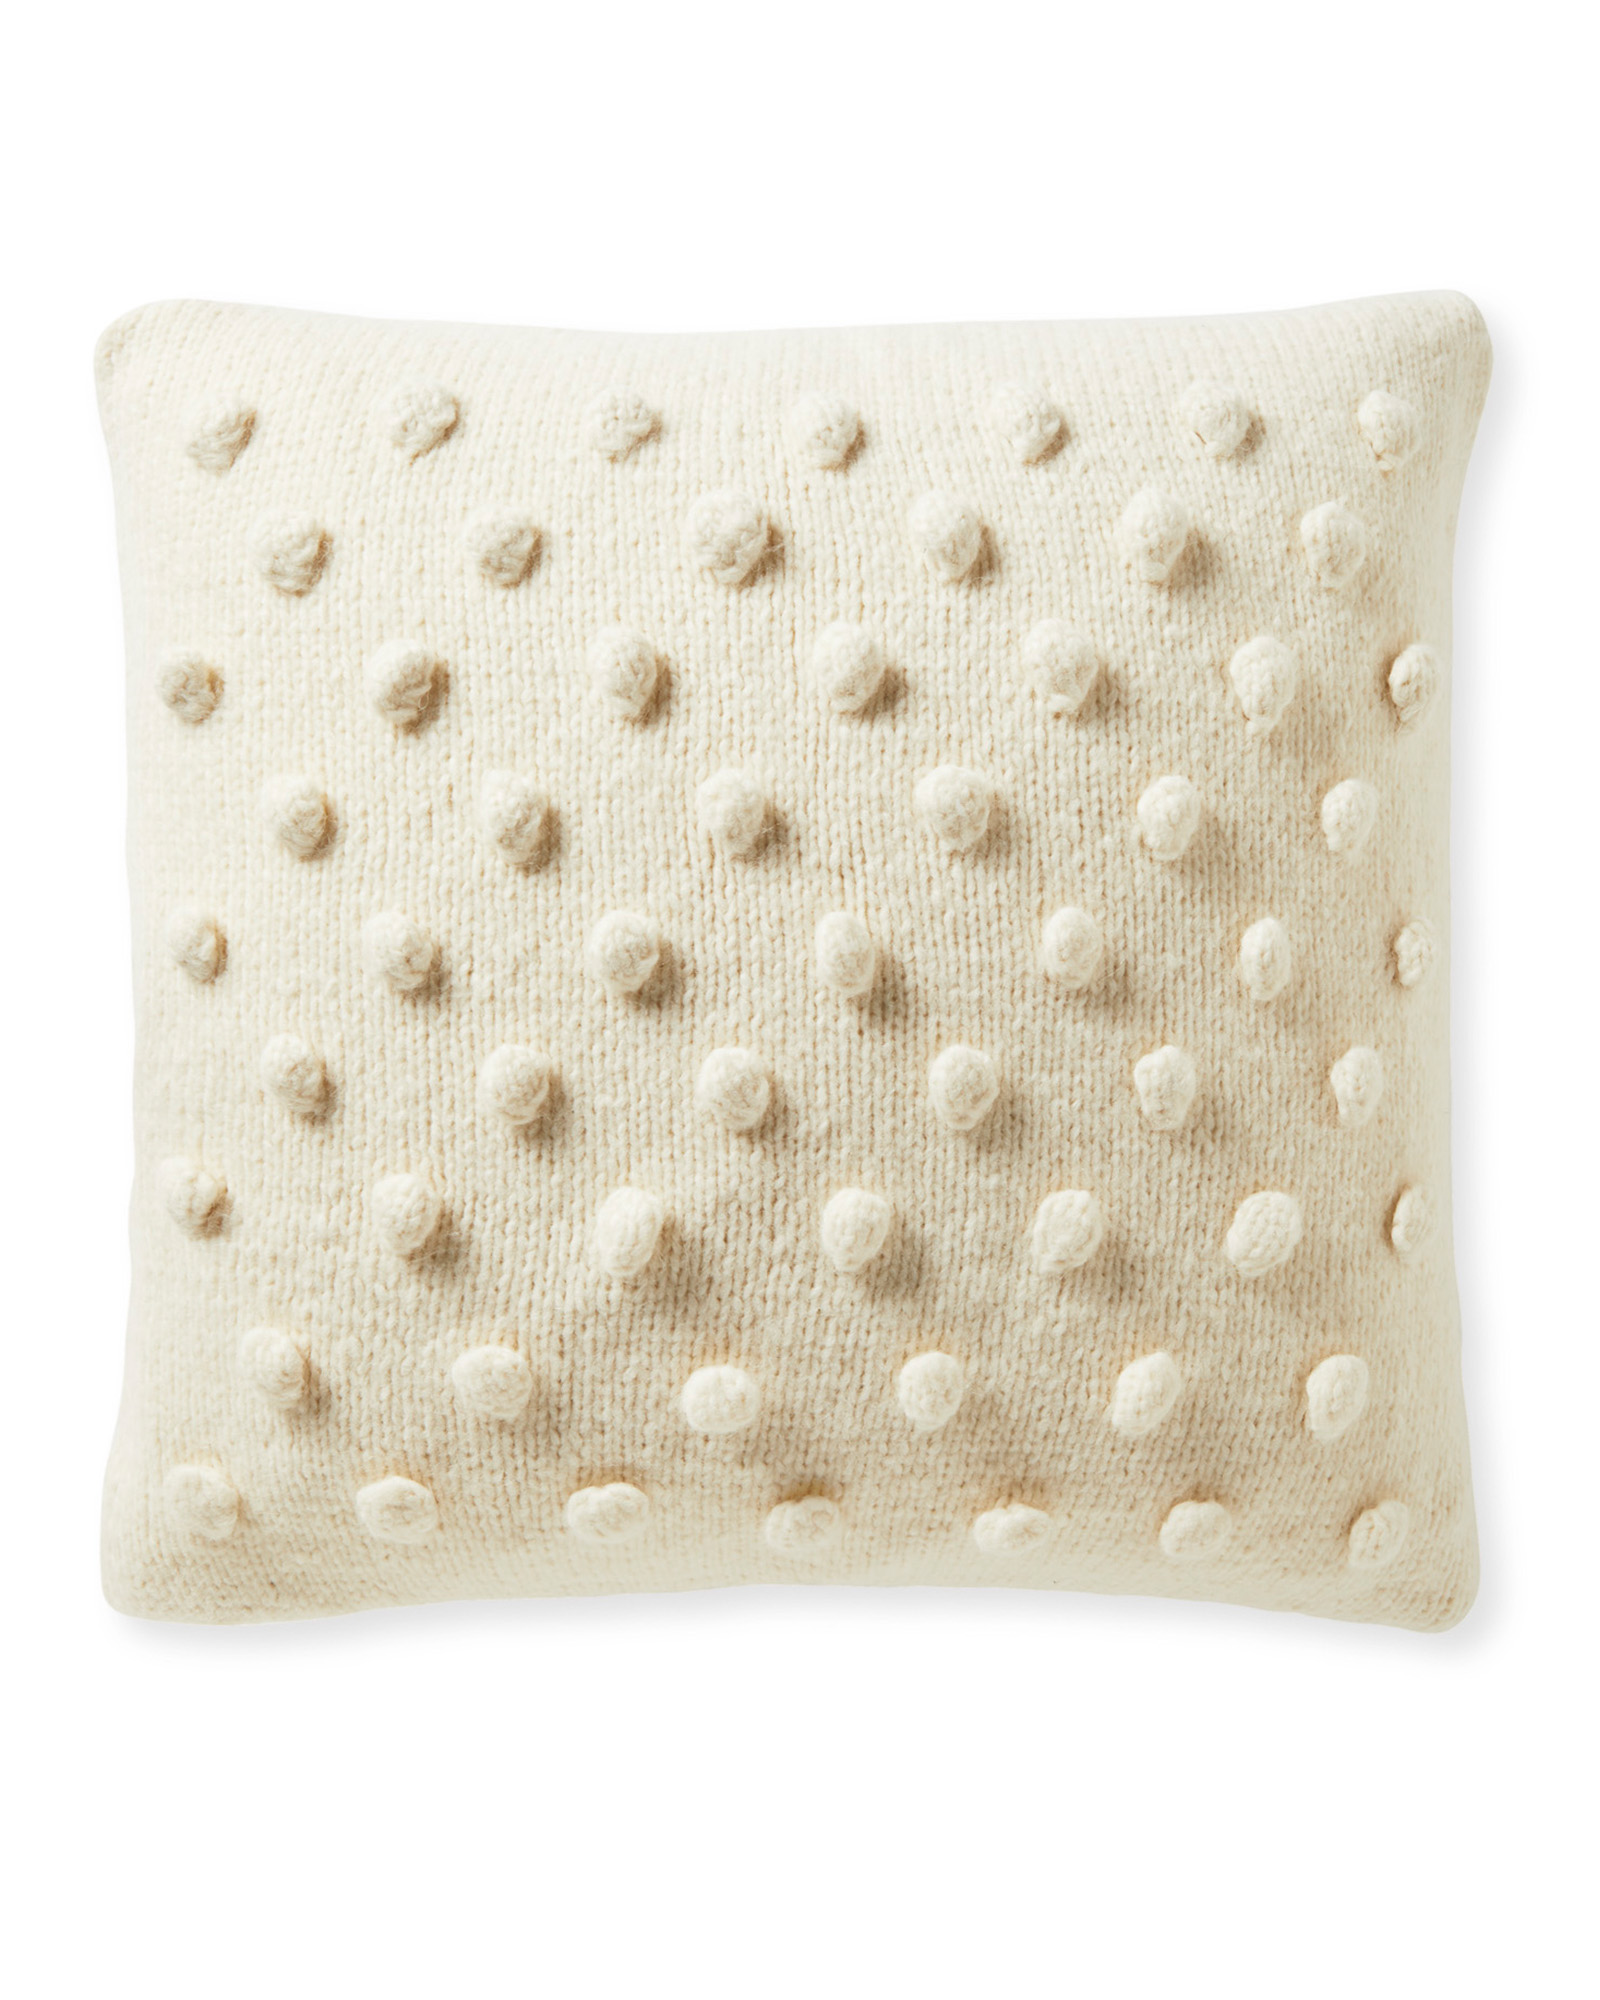 Auckland Pillow Cover, Ivory